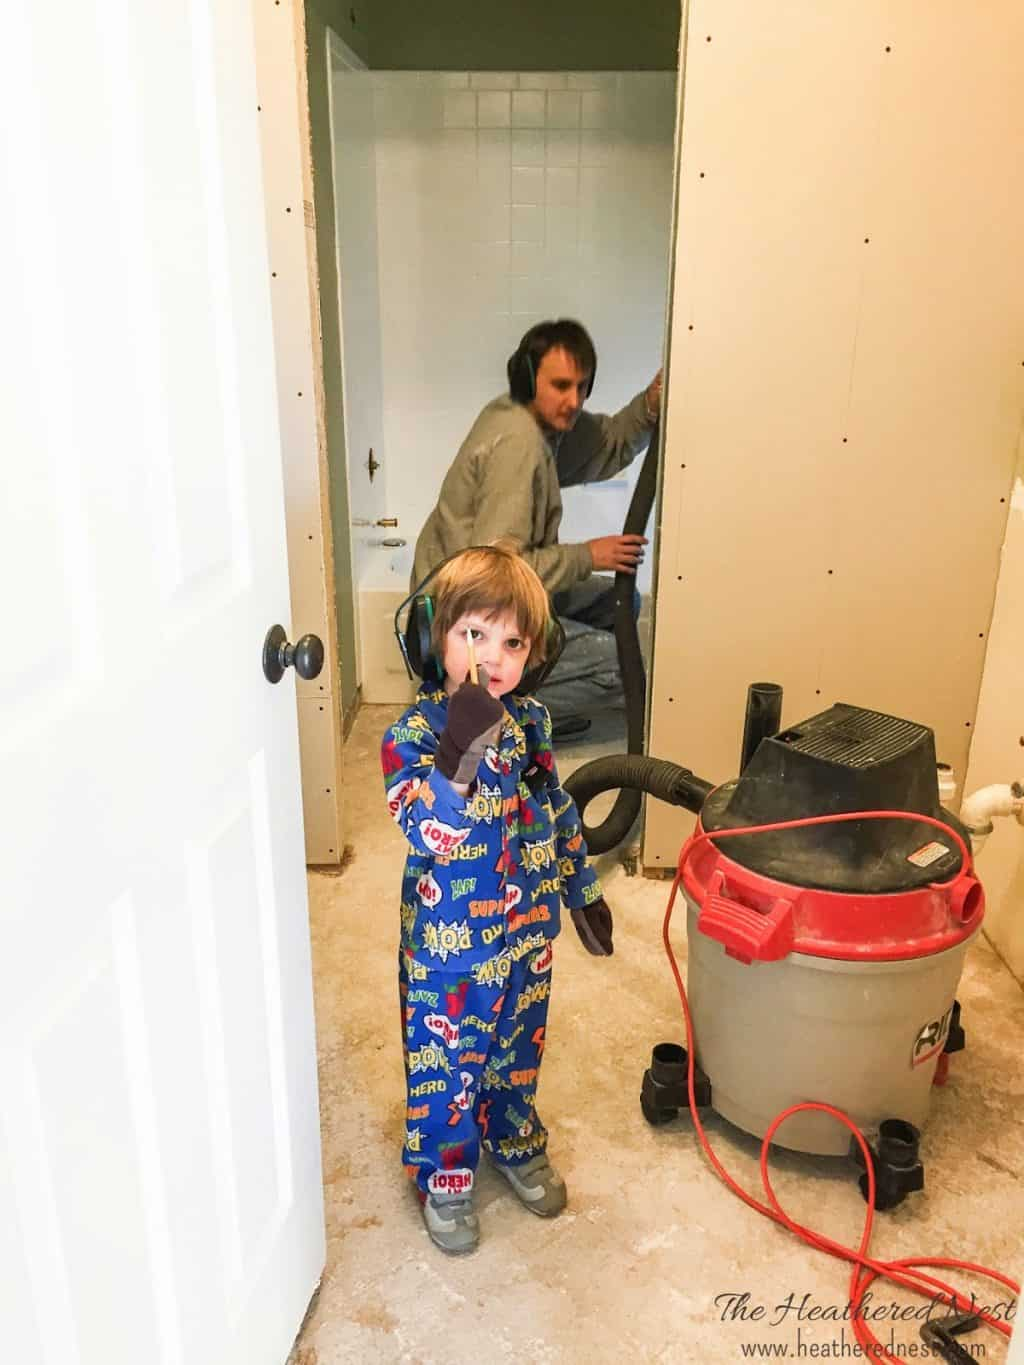 Kids helping (in pajamas) during a DIY bathroom renovation project